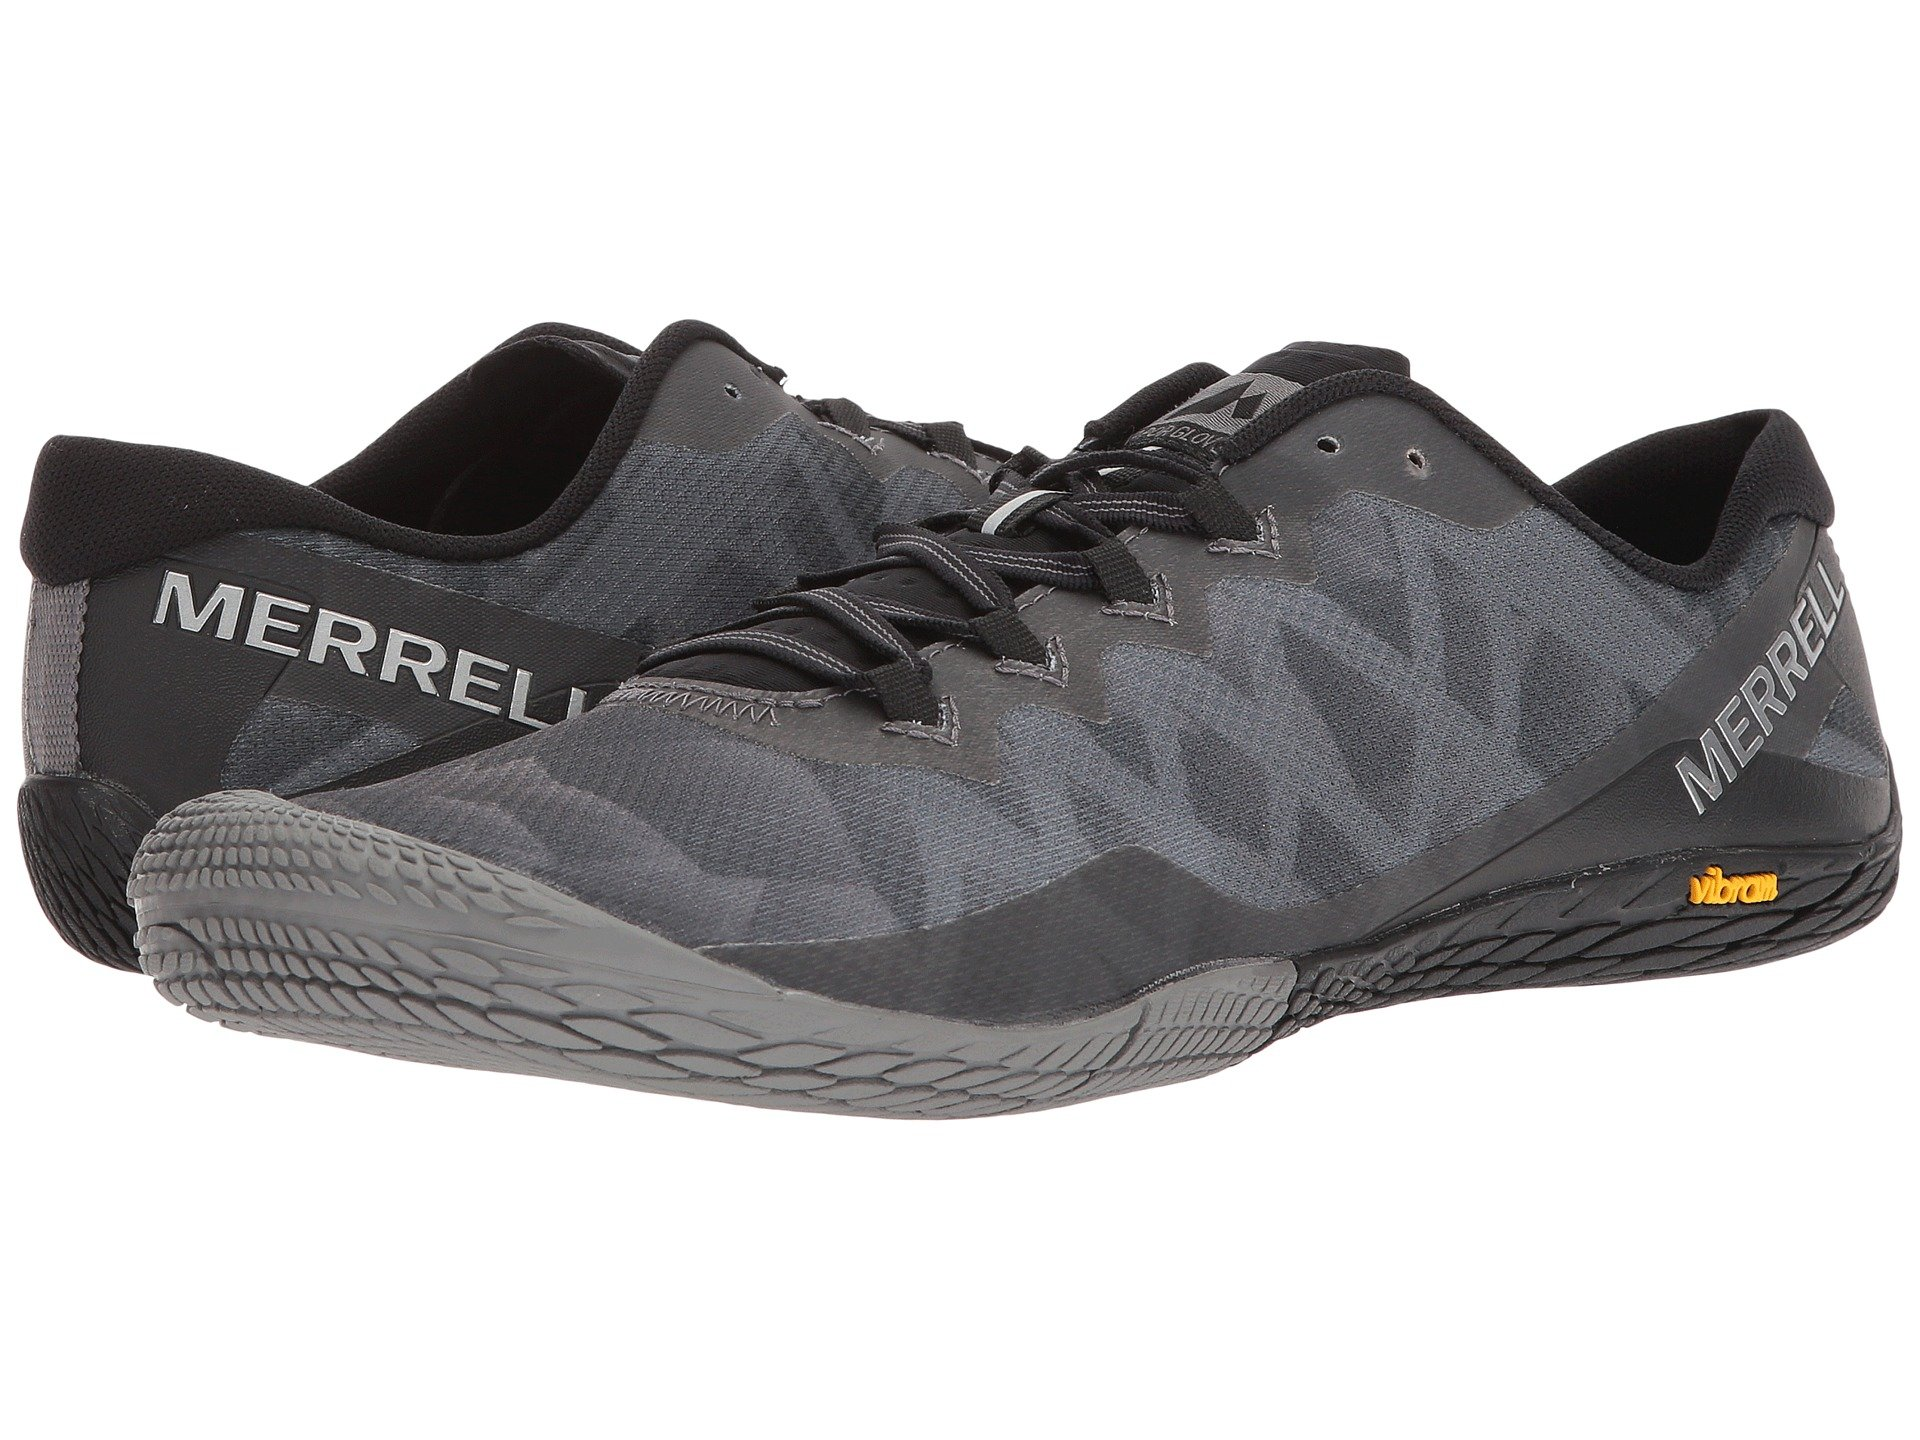 Merrell Trail Running Shoes Amazon